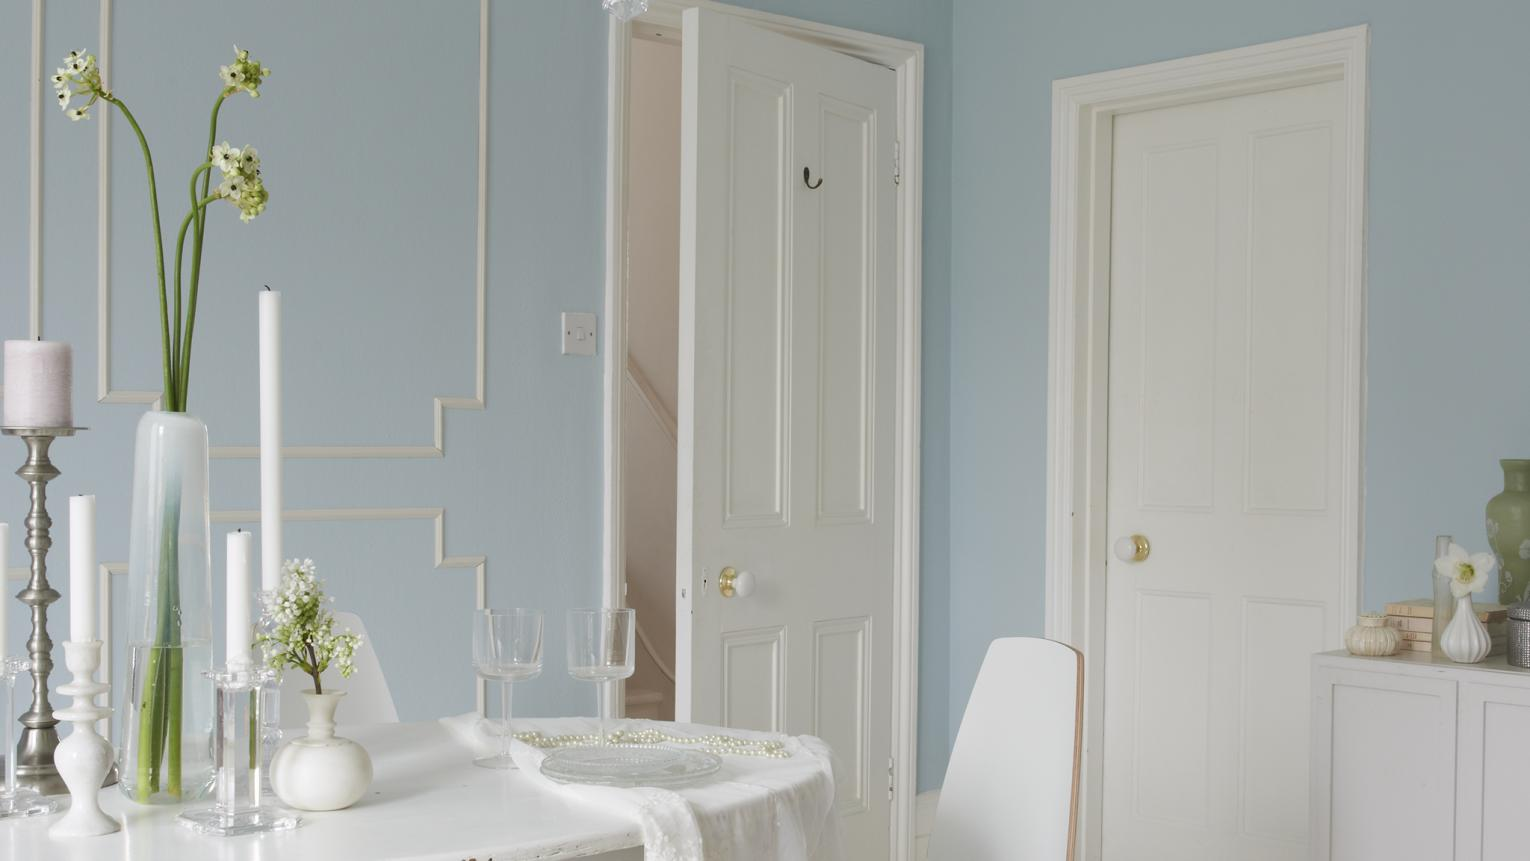 Learn how to create painted wall panels using wood mouldings. This is a great DIY project that can be achieved over a weekend.